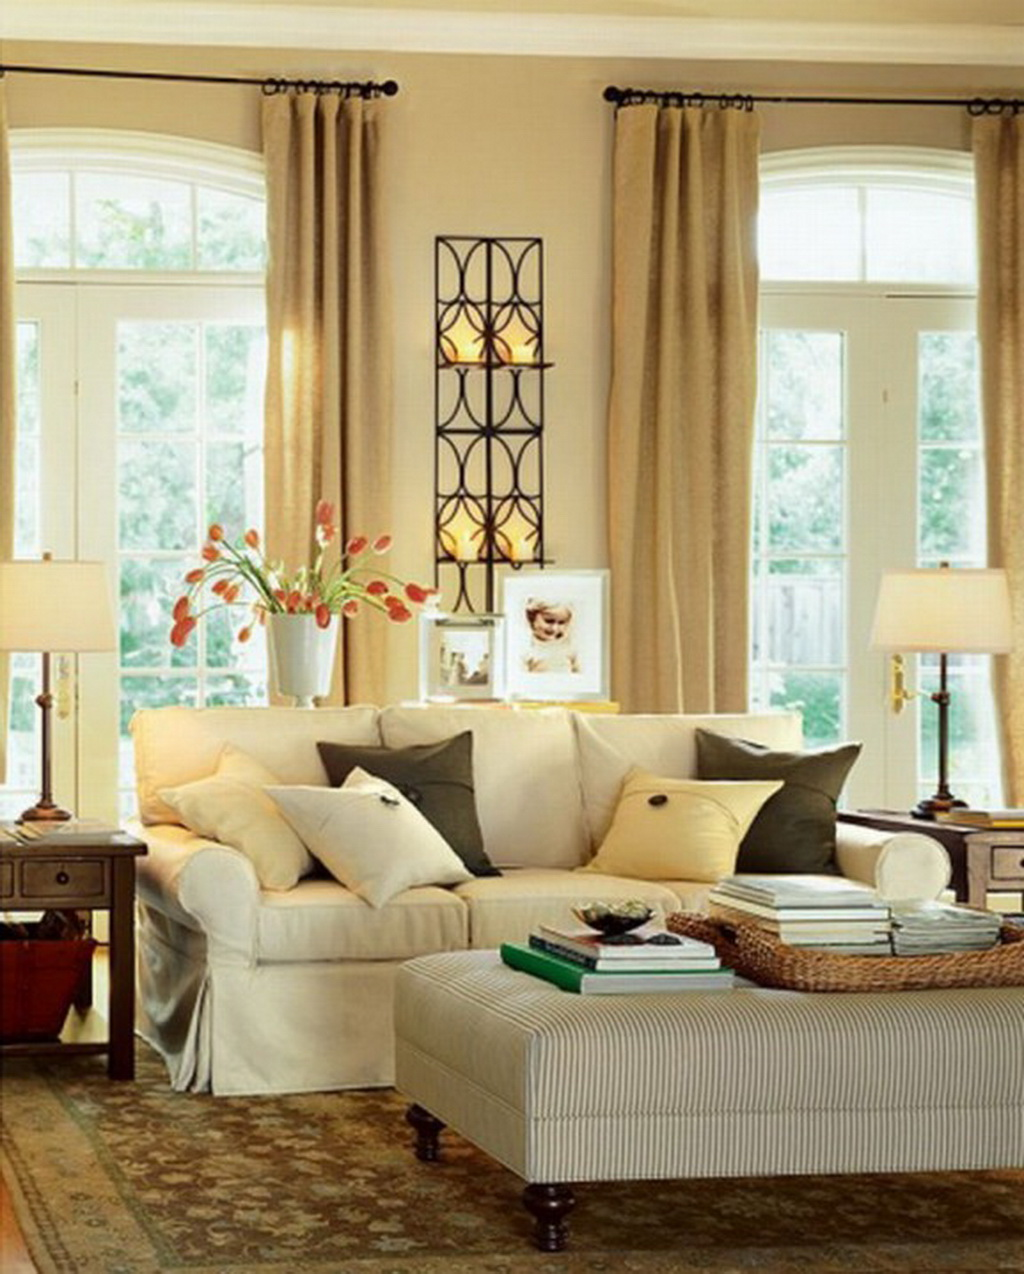 : 1024 x 1274 Pixel   Size: unknown bytes   Category: Living Room ...